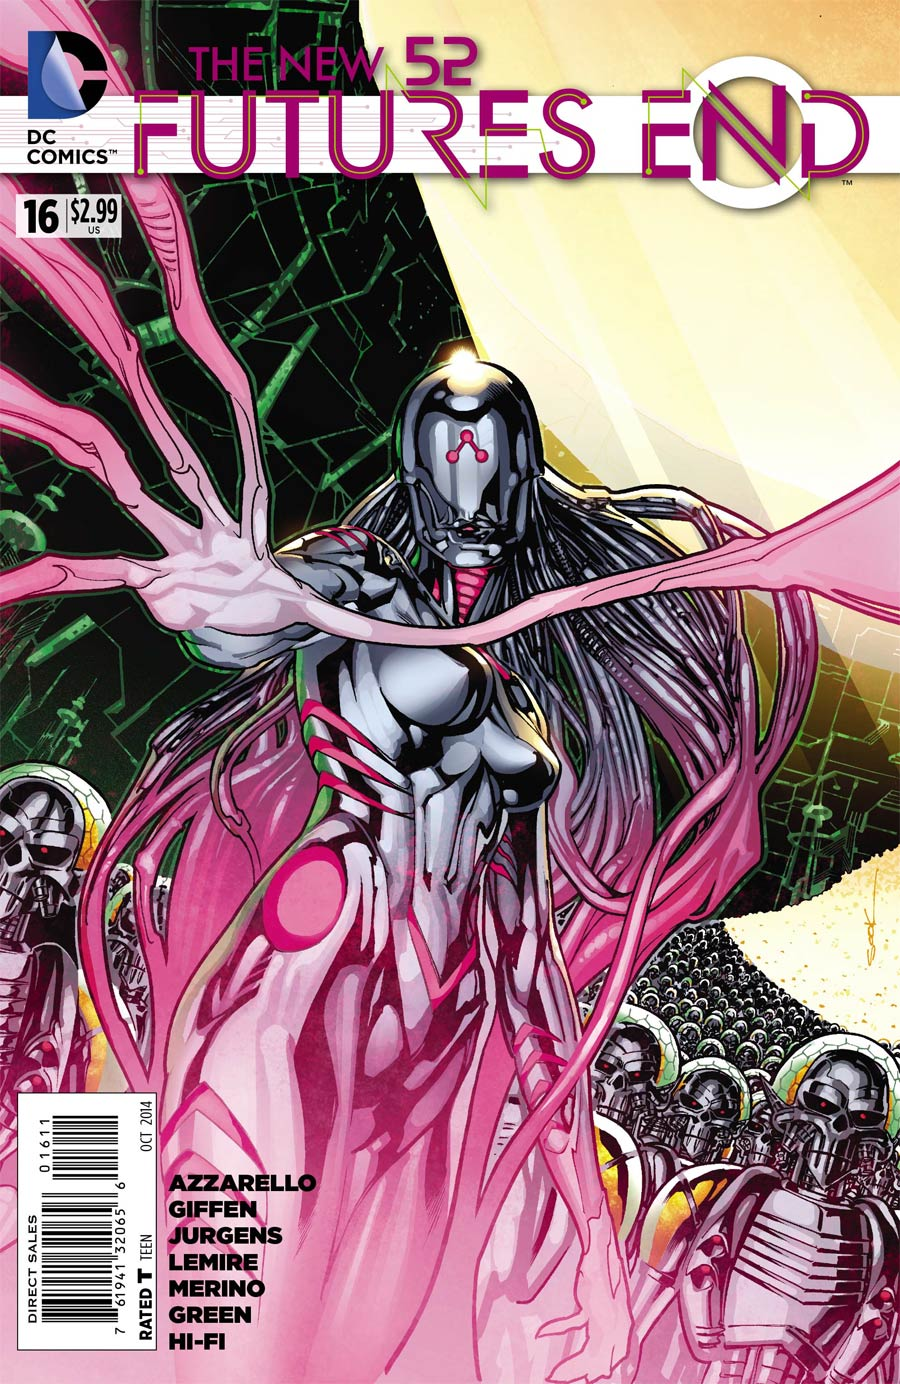 New 52 Futures End #16